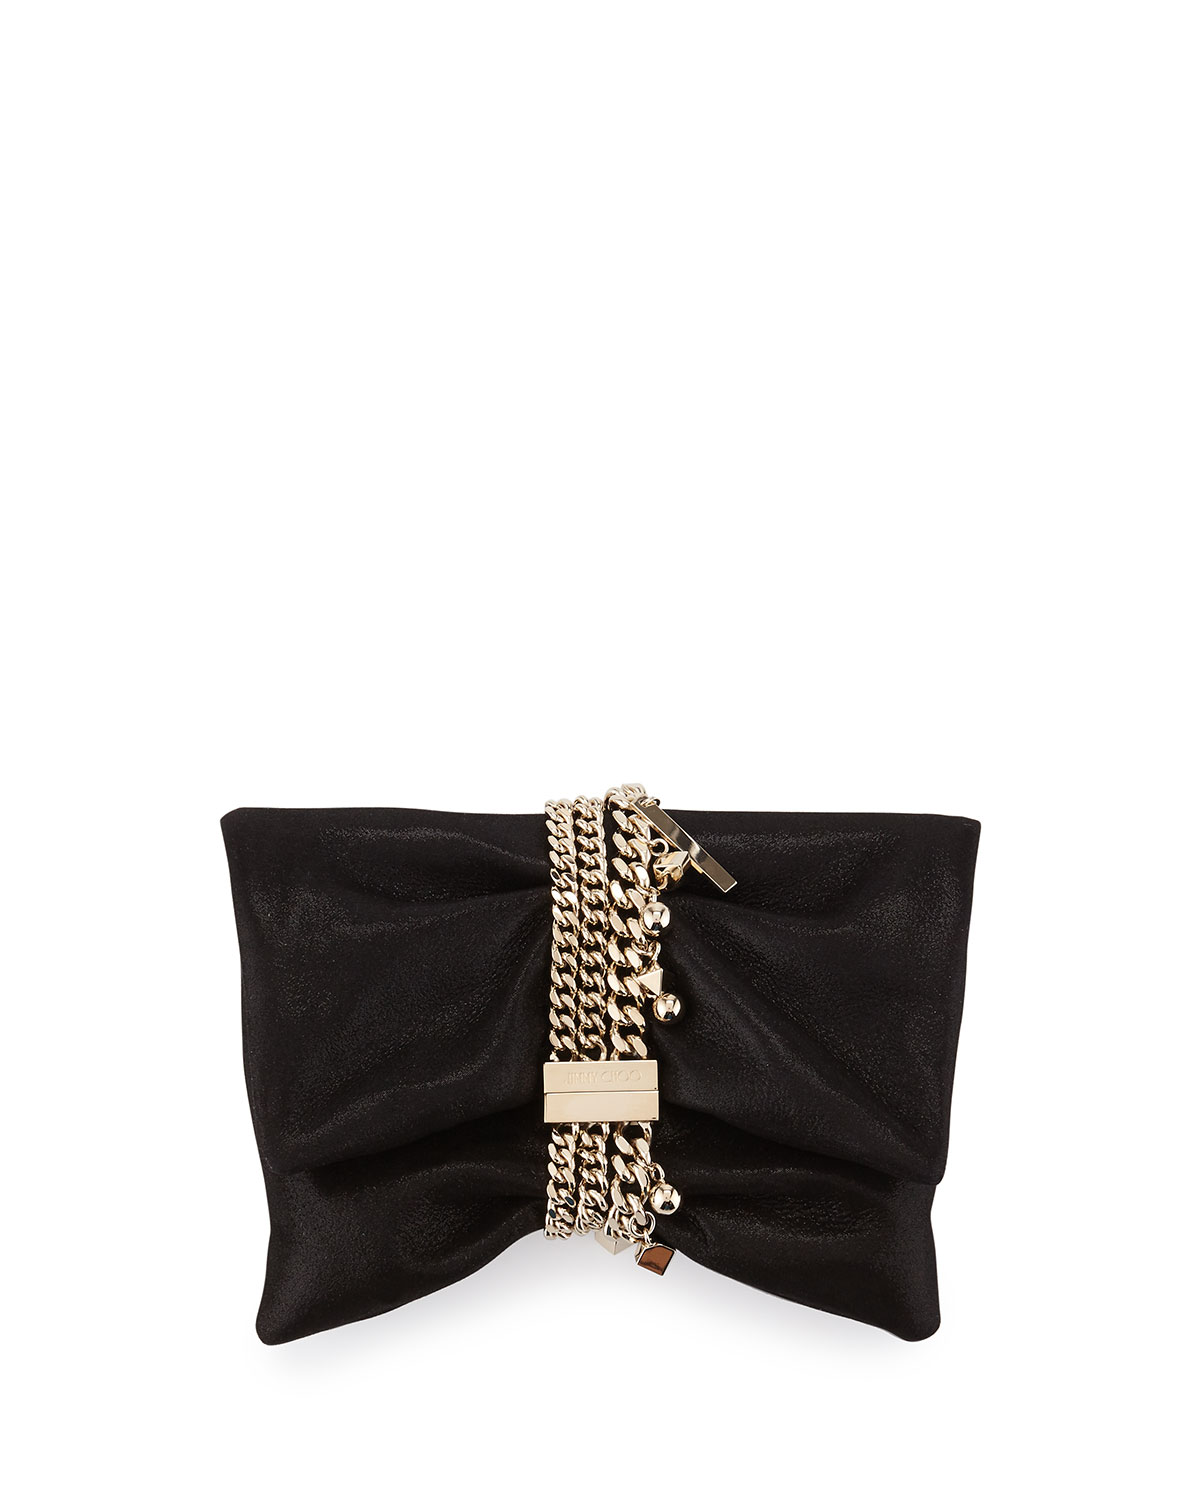 Chandra Shimmery Suede Clutch Bag